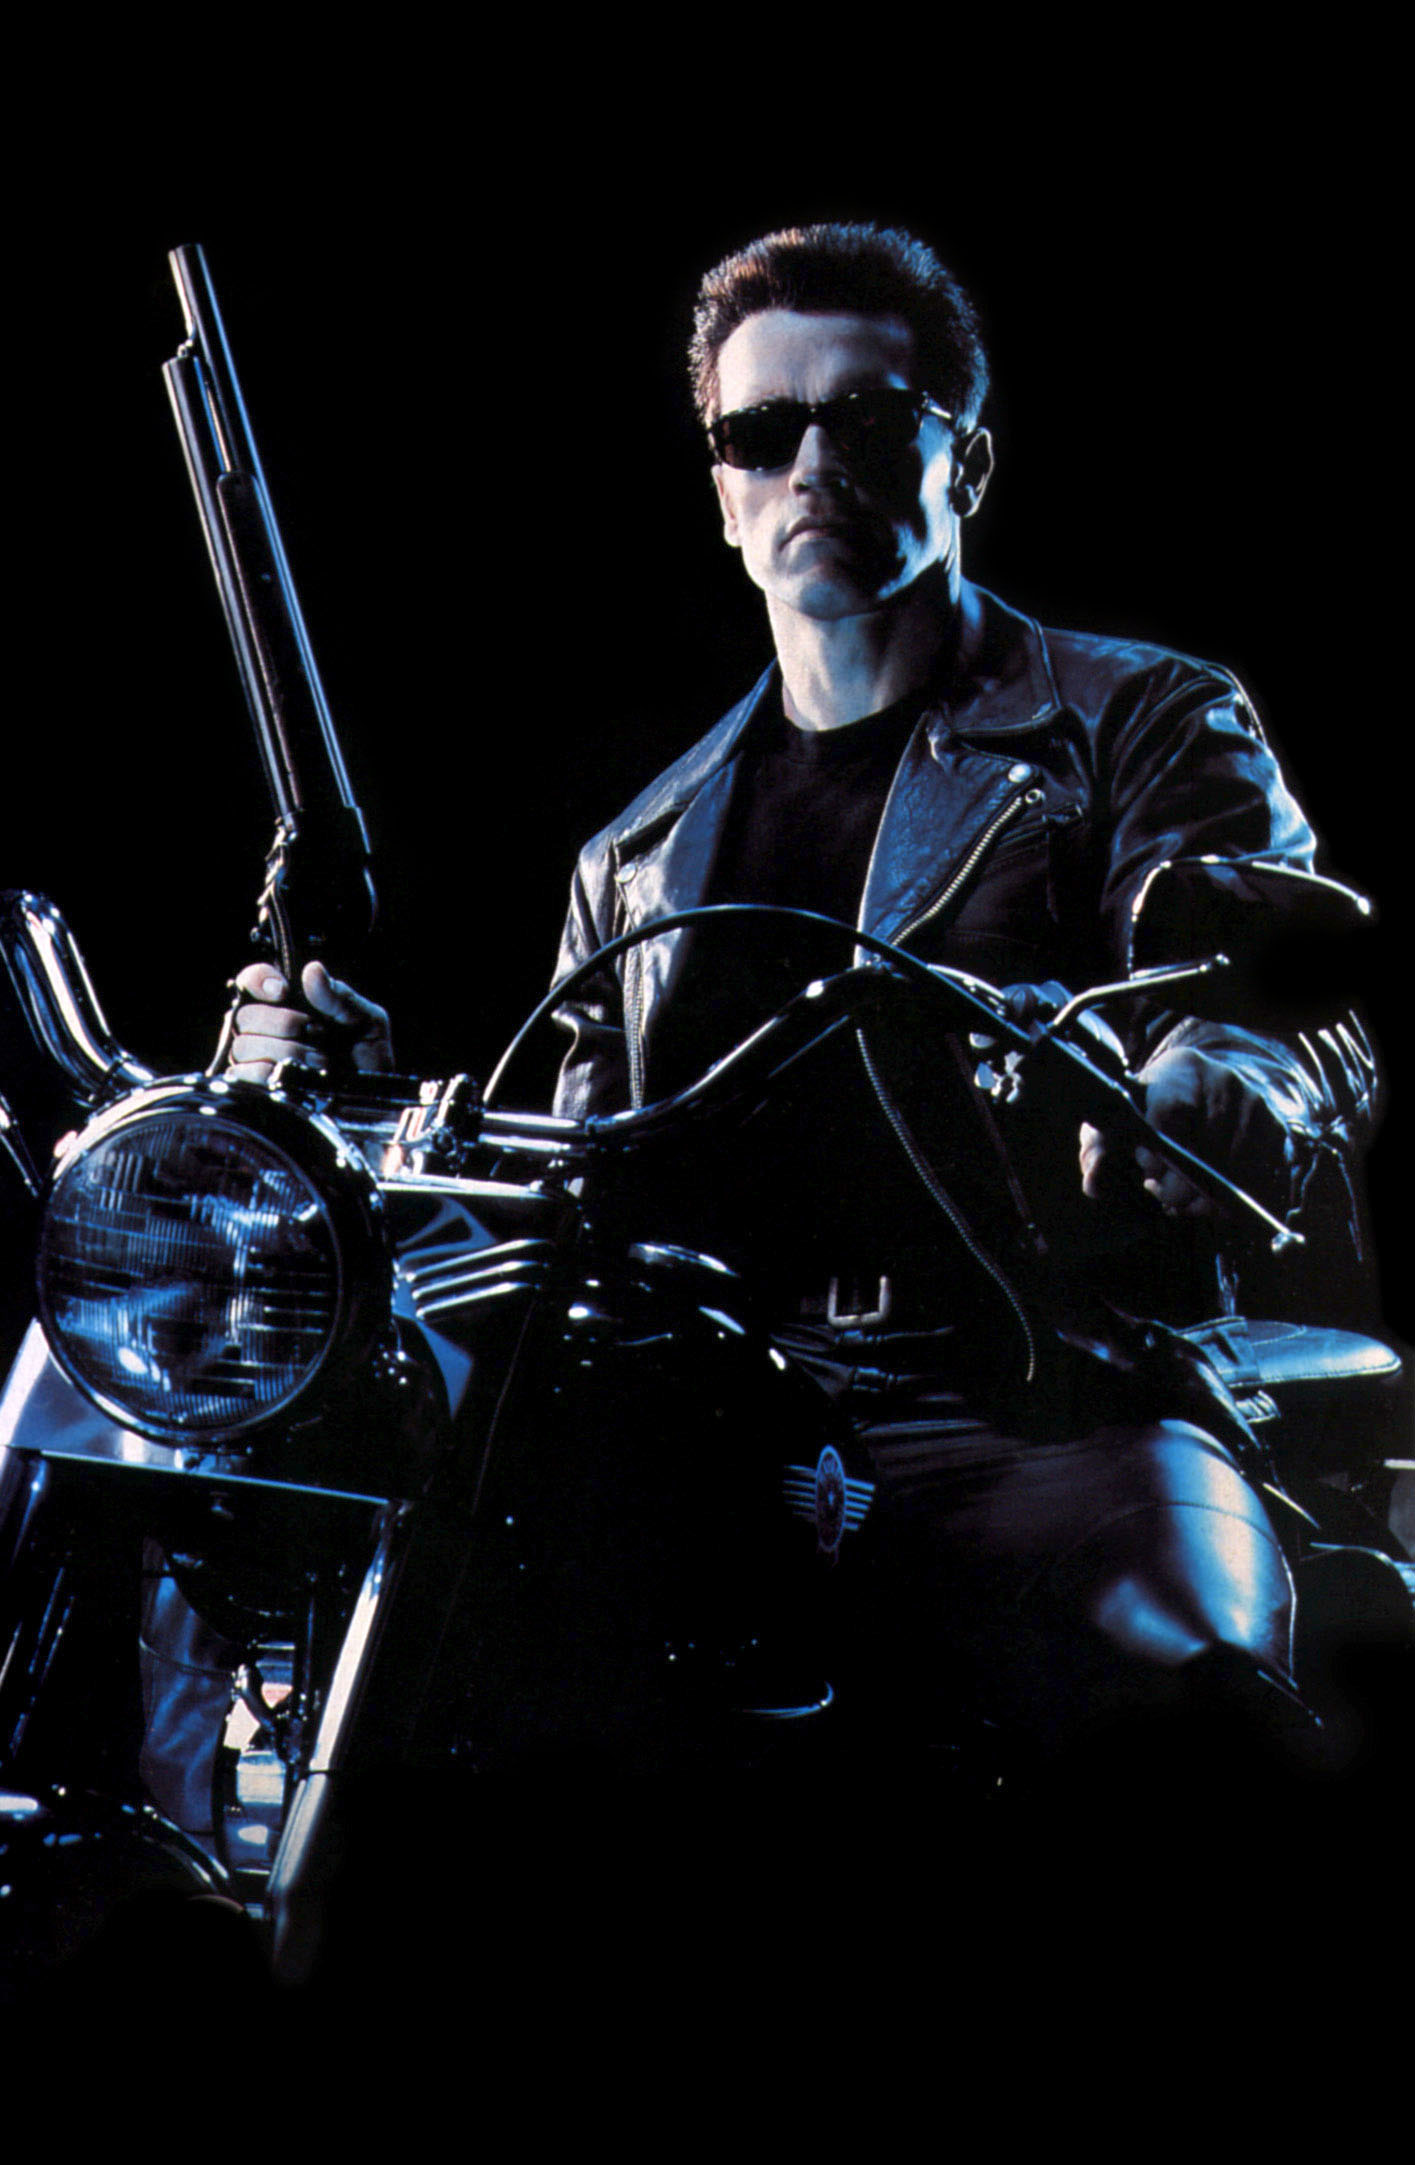 the context of the film, upon arriving in 1995, the T-800 Terminator